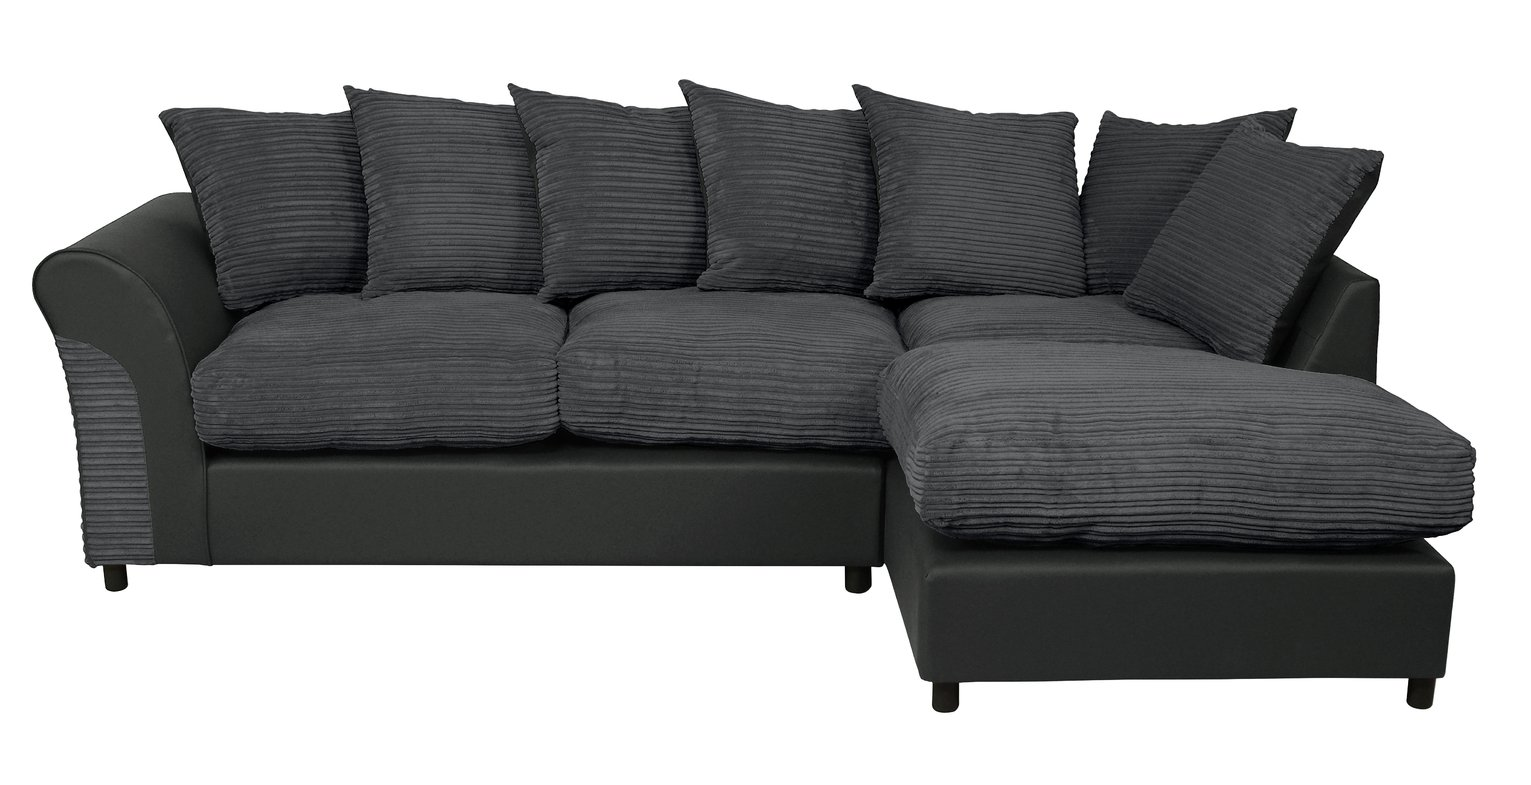 large square corner sofa chaise bobs sofas argos home harry right fabric charcoal